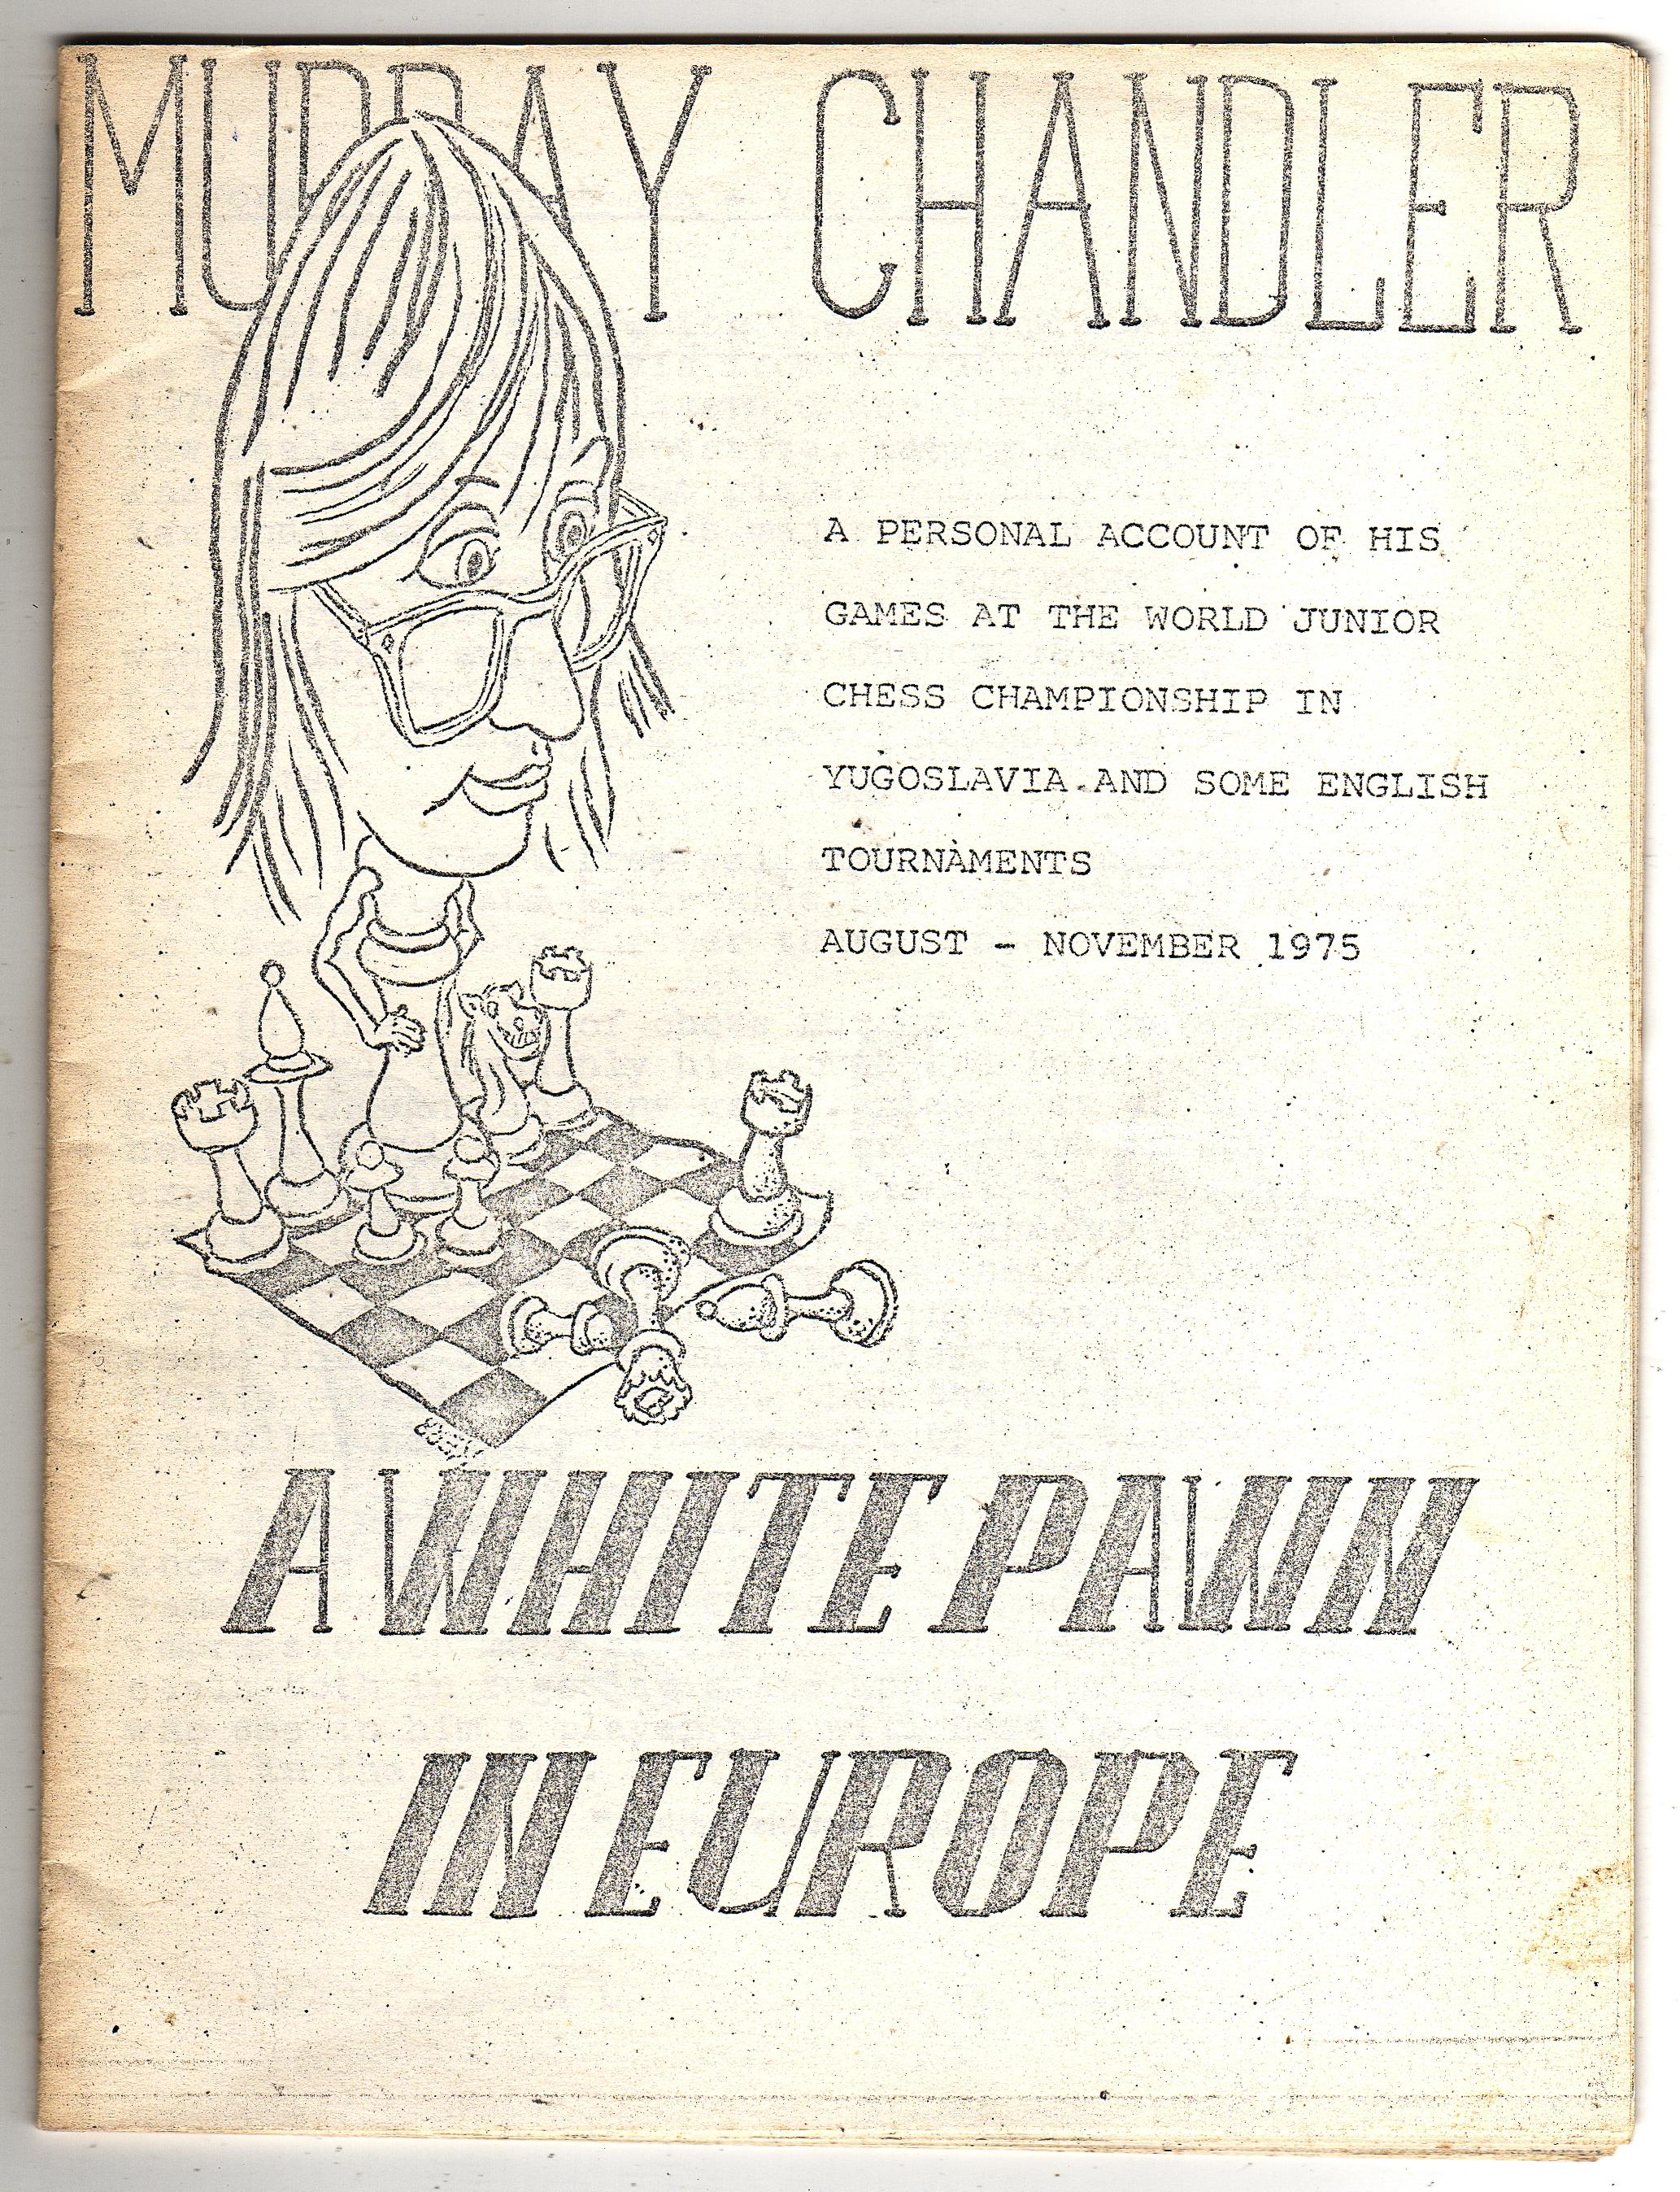 white pawn in europe001_lv.jpg